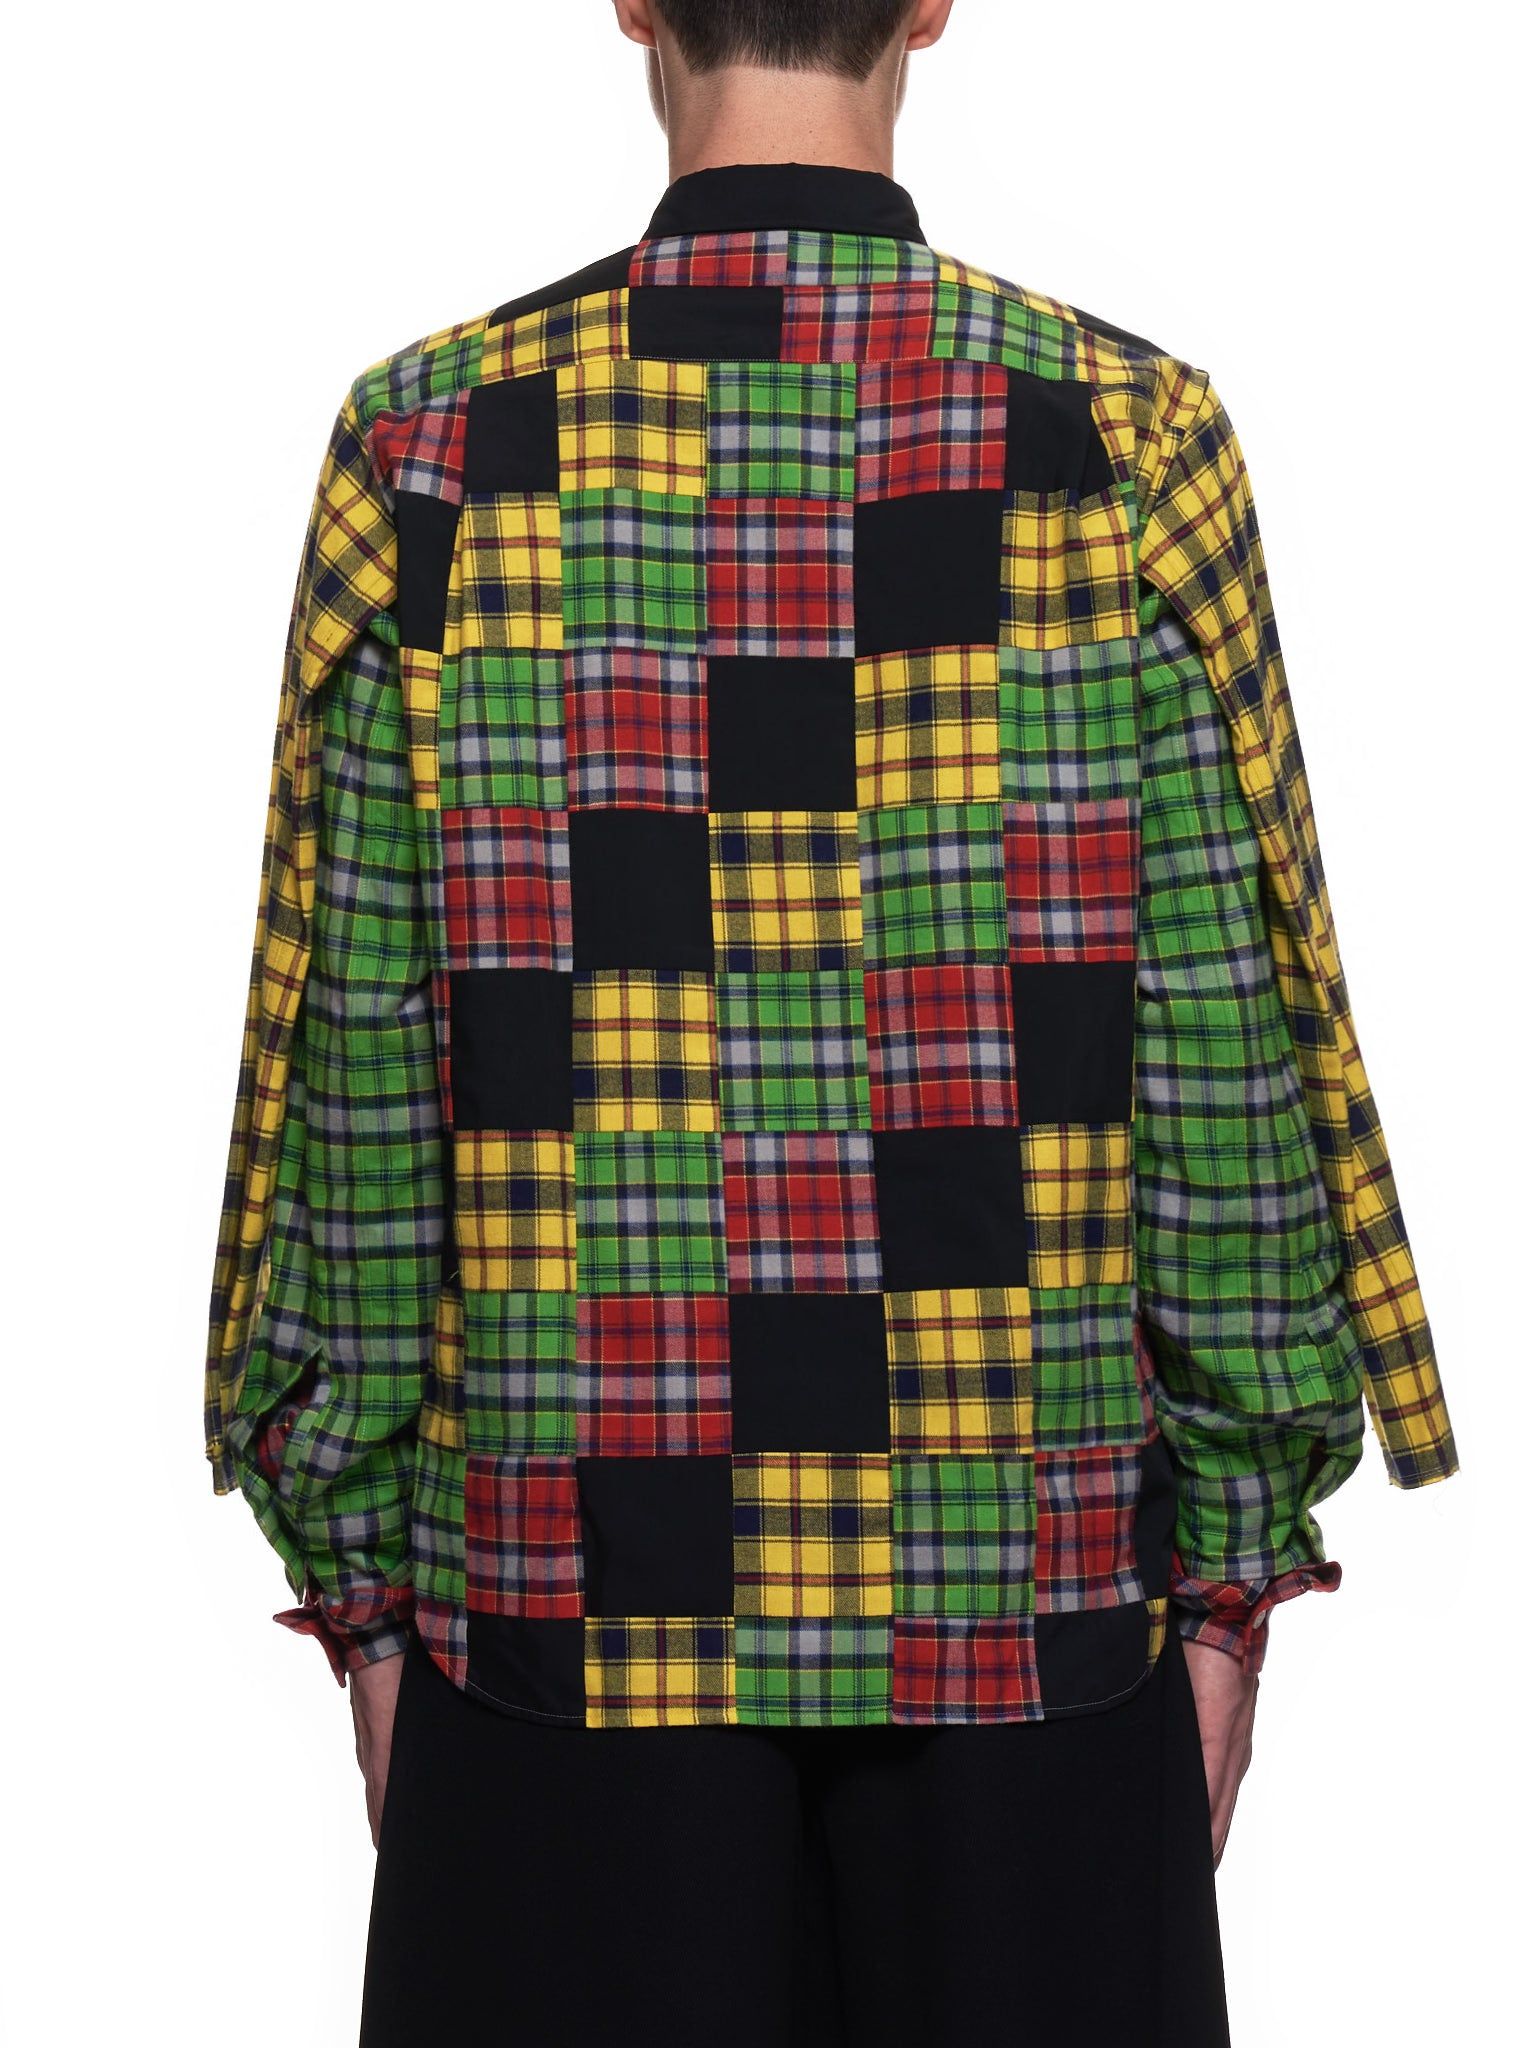 Cubed Plaid Shirt (PF-B019-051-BLACK-MULTI)